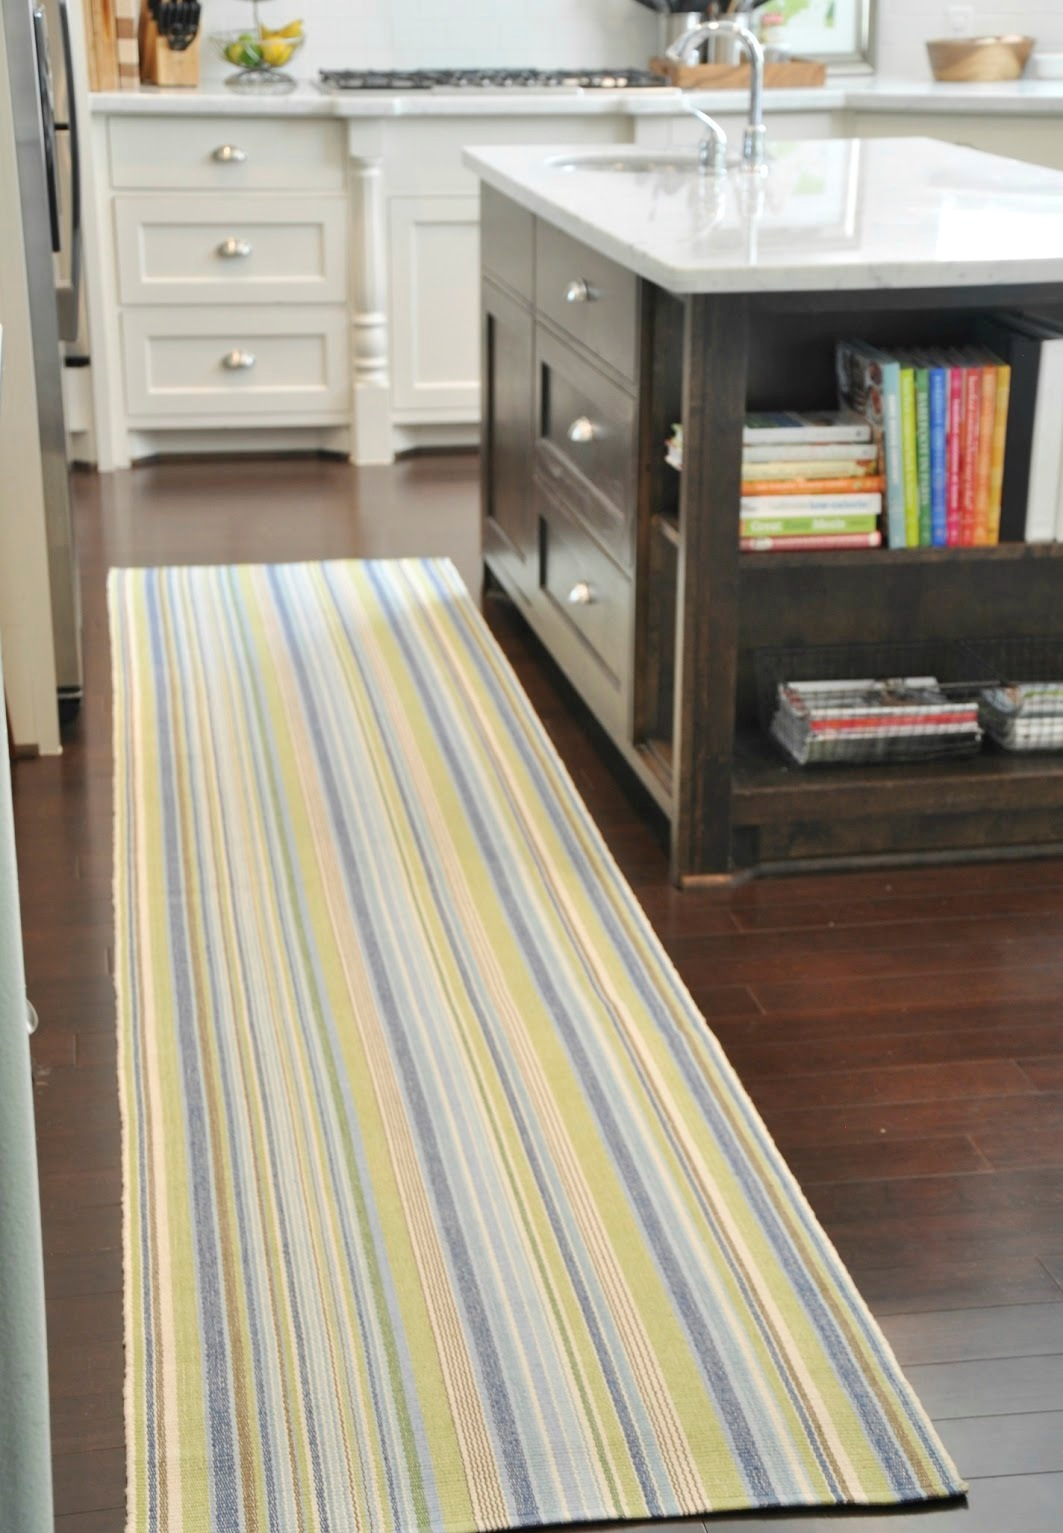 Some vintage and stylish kitchen mat and rug ideas homesfeed - Yellow kitchen floor mats ...